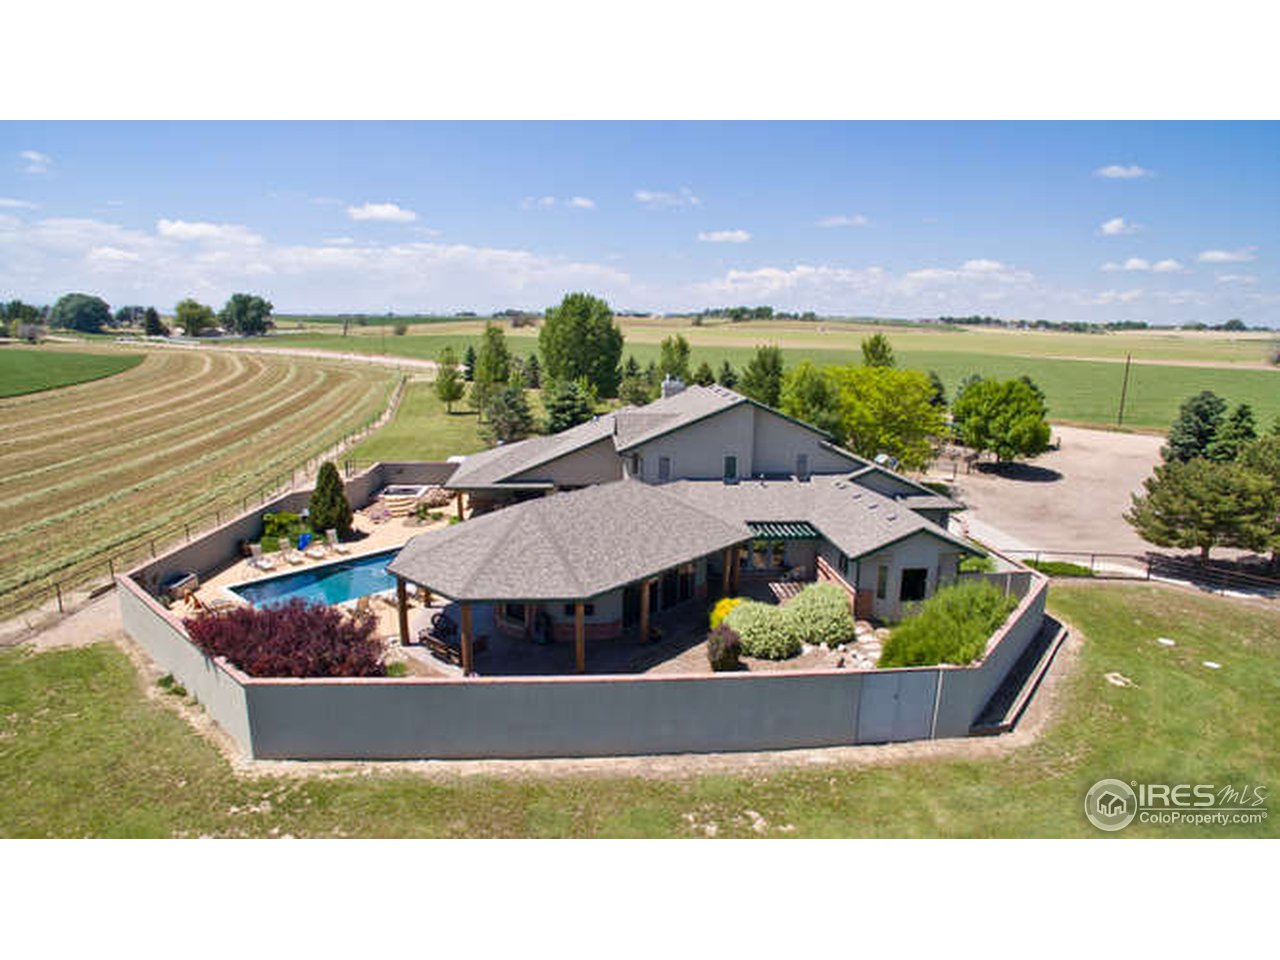 Amazing and private w/ pool and full horse setup